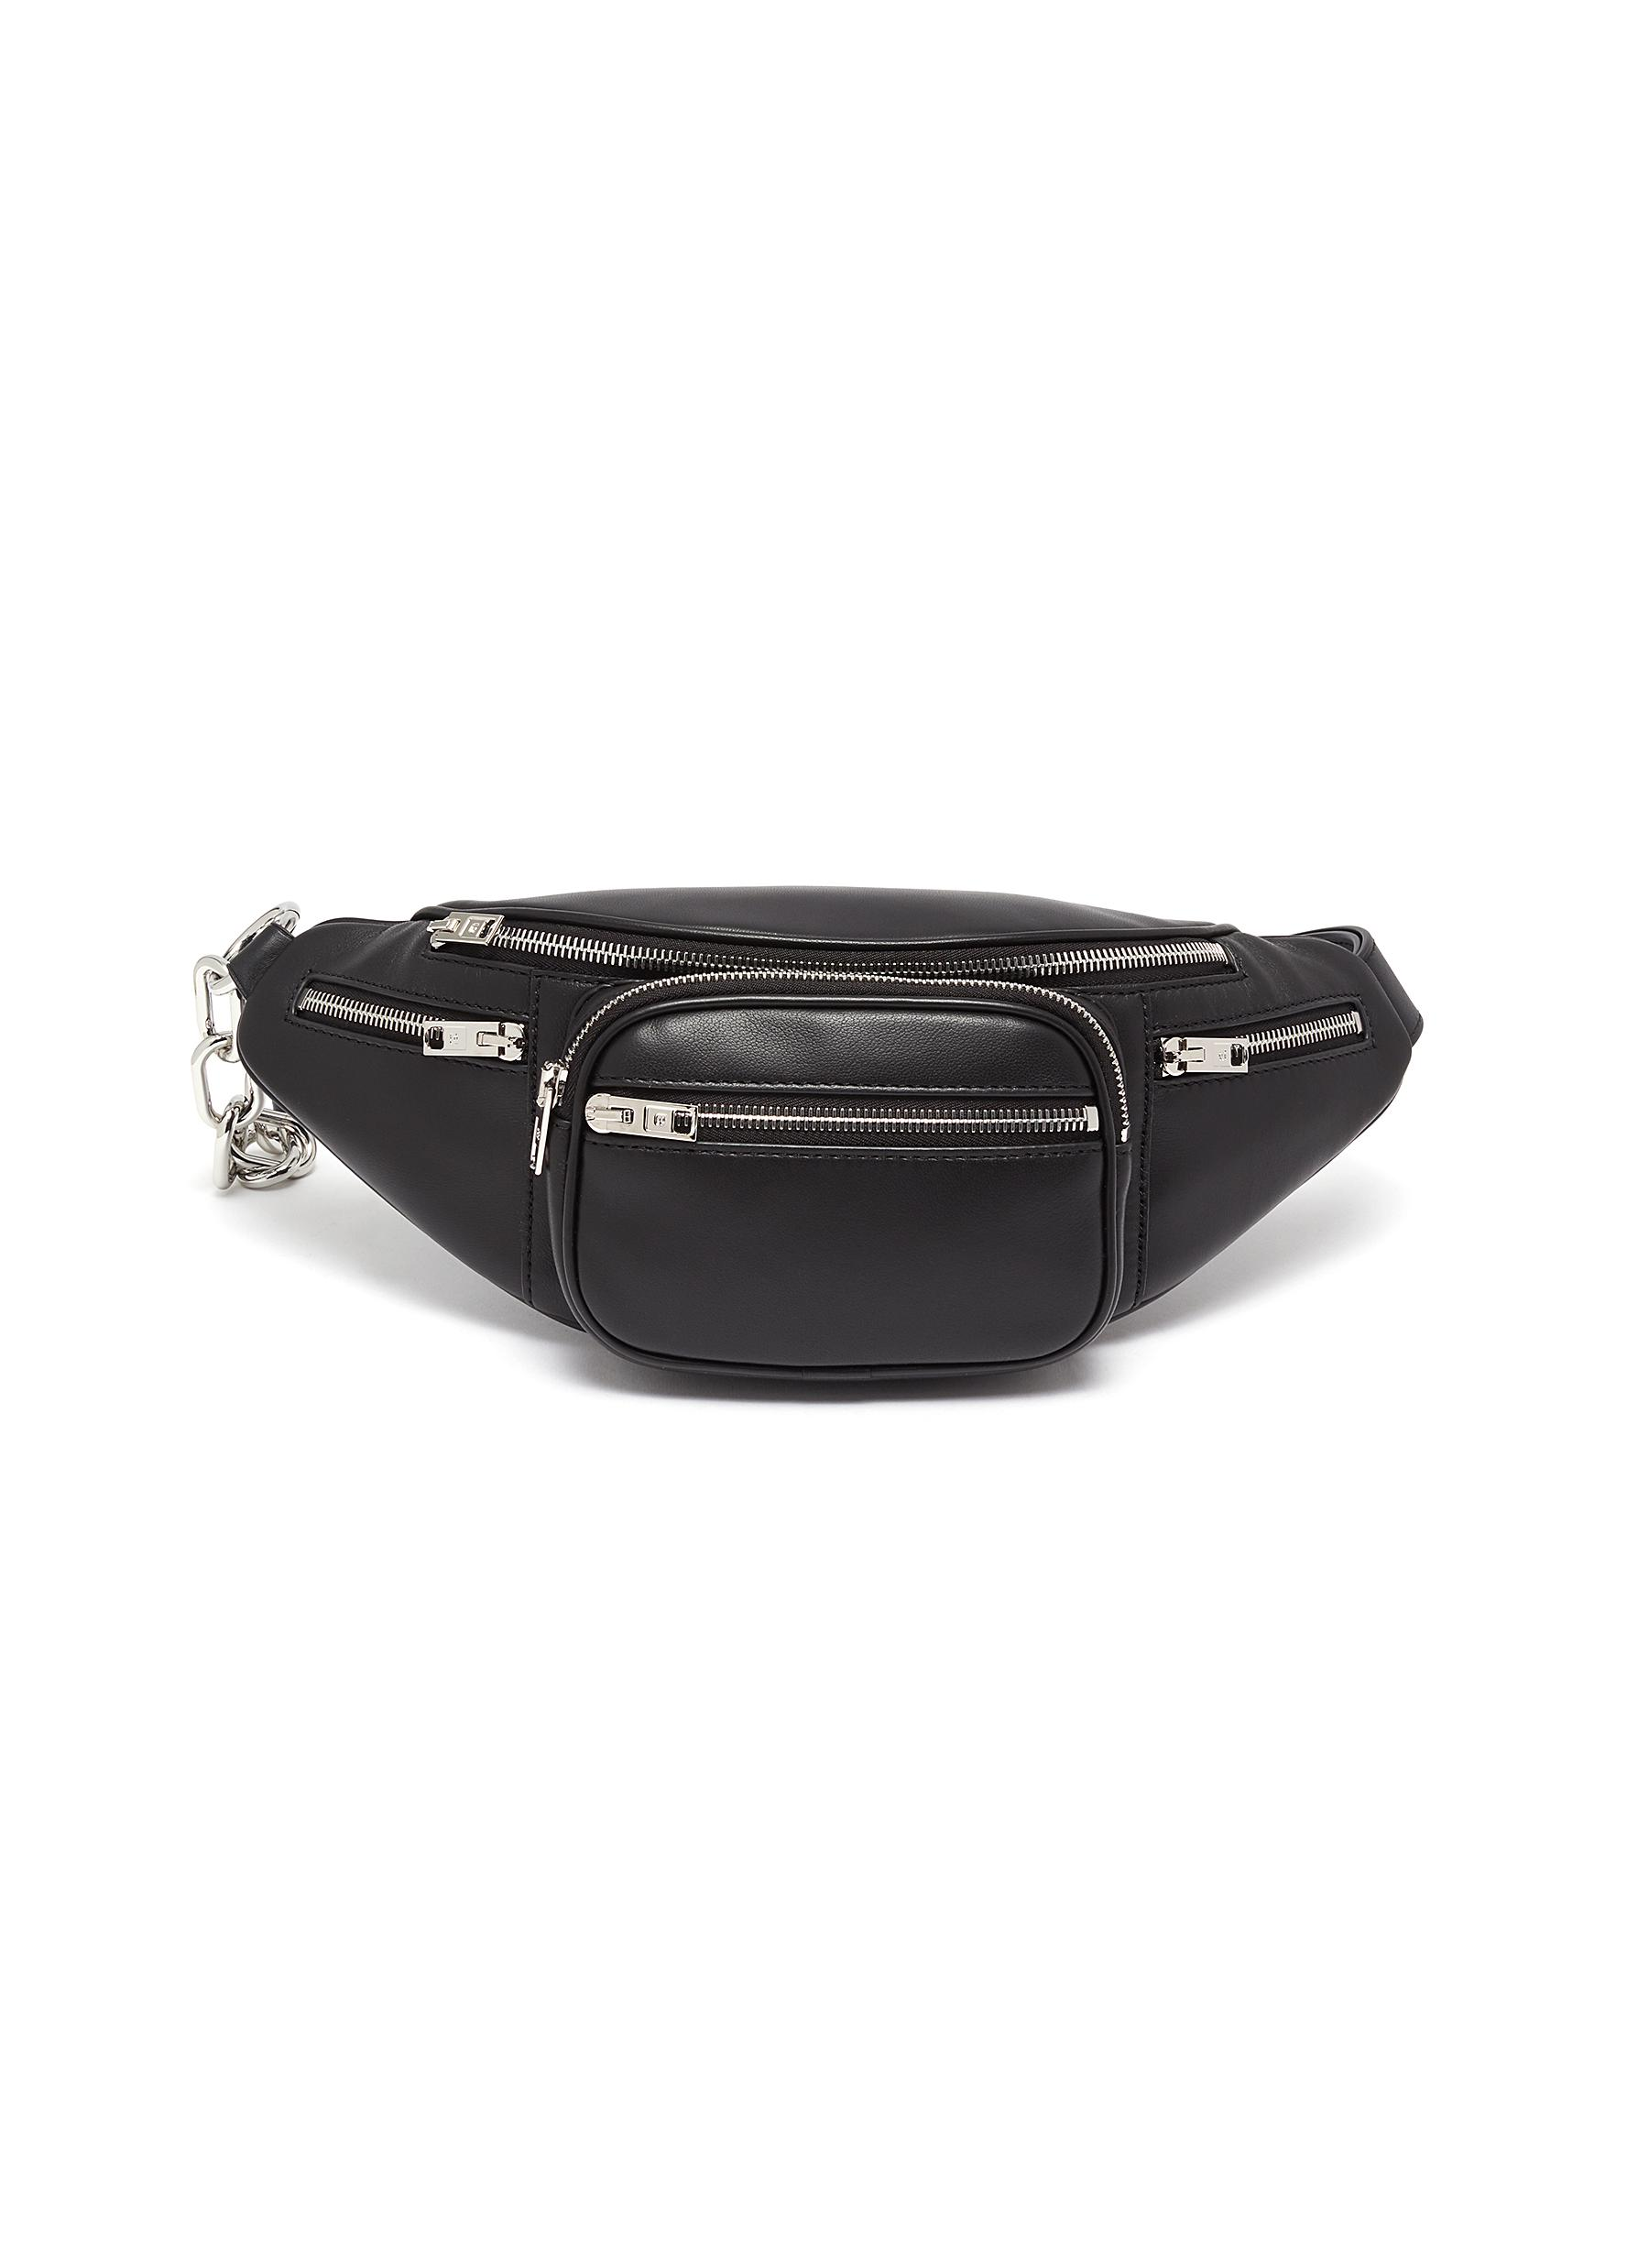 Alexander Wang 'ATTICA' LAMBSKIN LEATHER BUM BAG